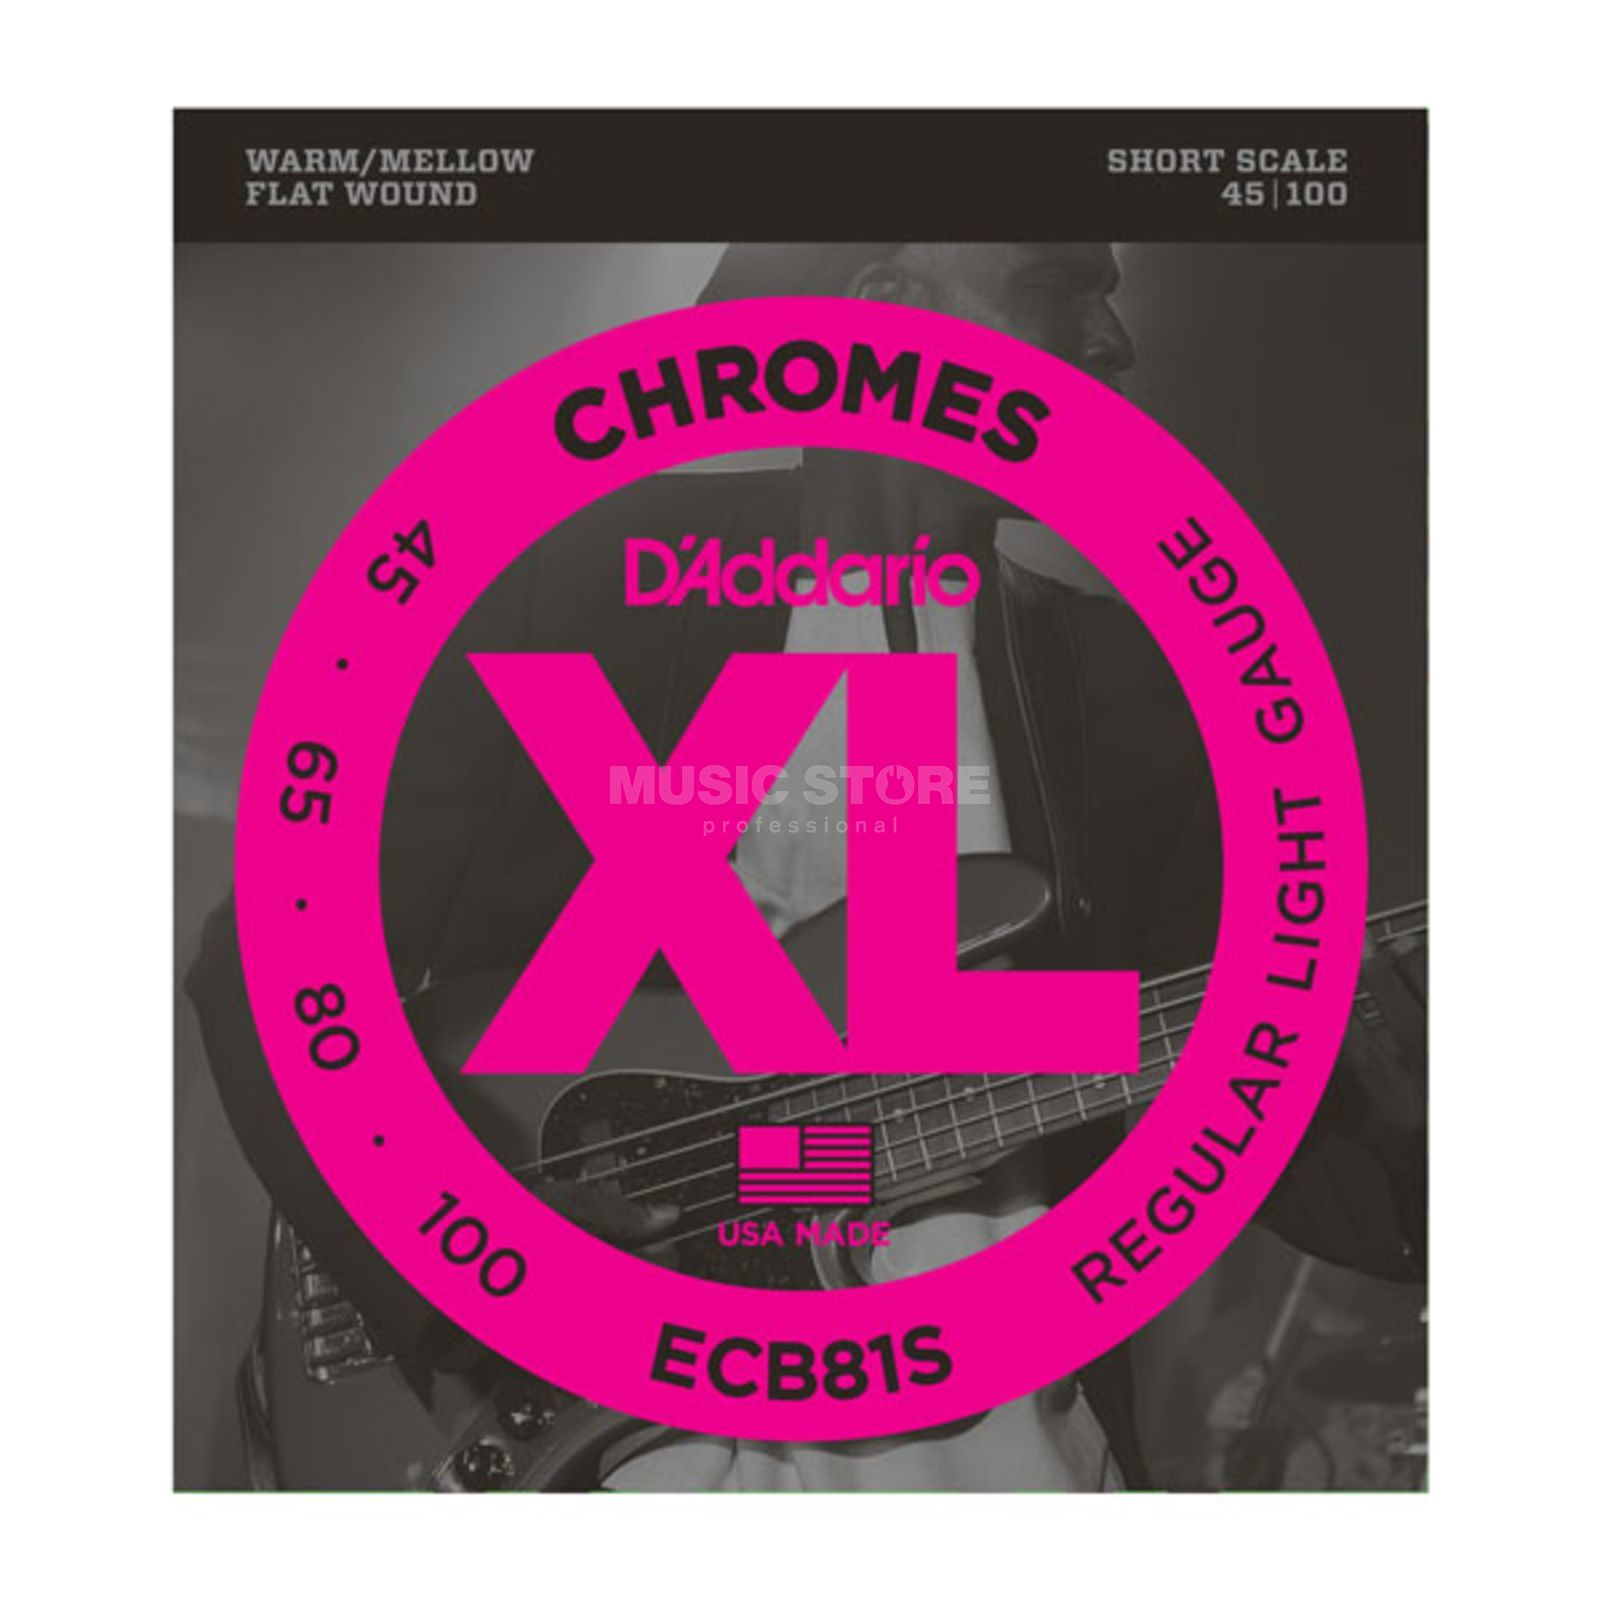 D'Addario Bass Chromes Flat 45-100 45-65-80-100, ECB81S Product Image